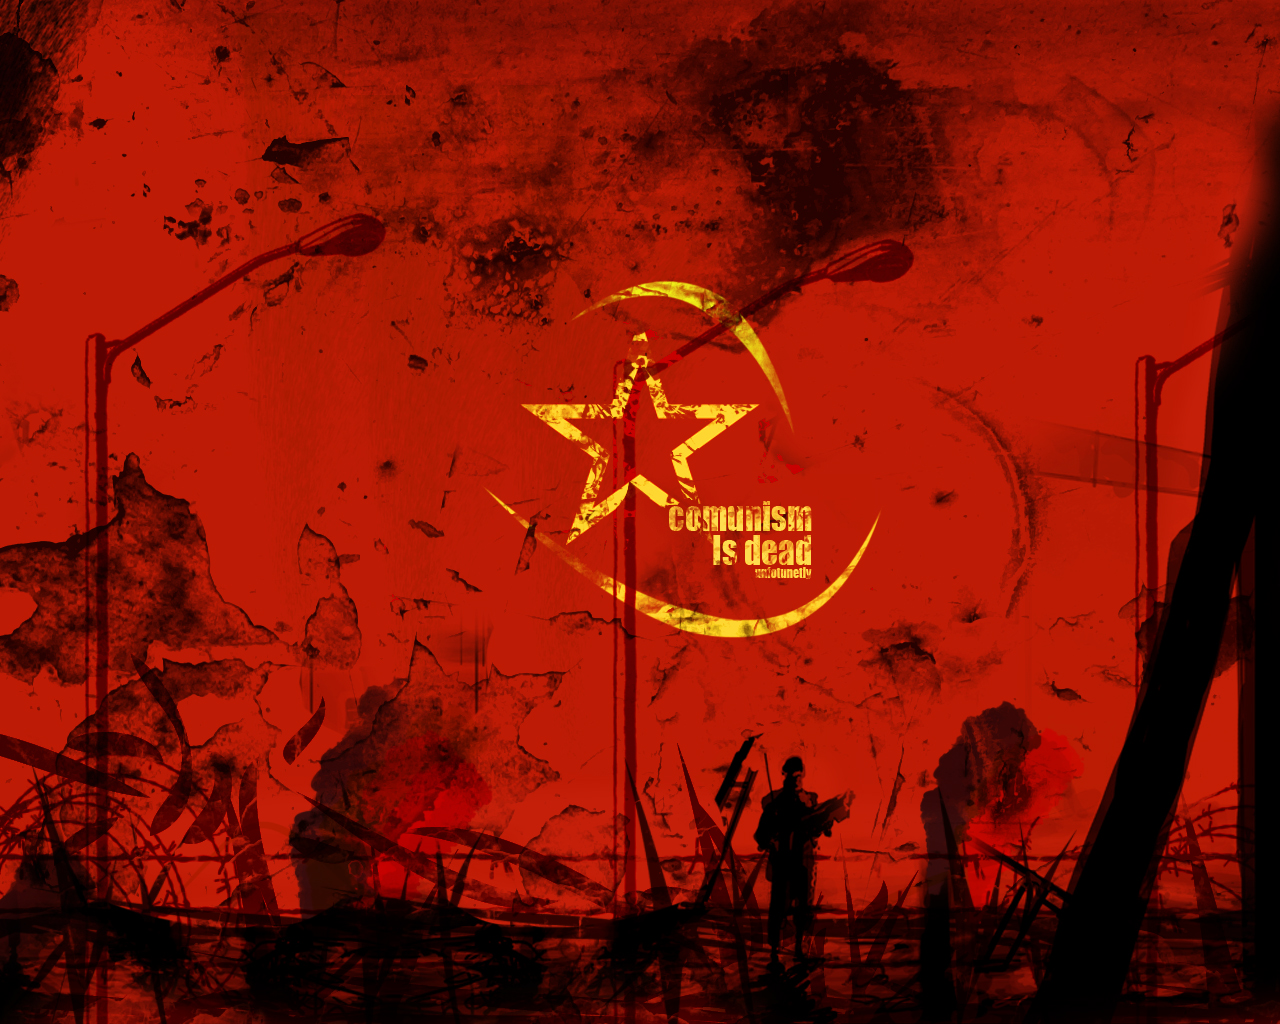 http://1.bp.blogspot.com/_BE_hjfQCwZQ/TNJAgVmdsPI/AAAAAAAAAA4/ElJ-iLfvZ9Q/s1600/communism_is_dead_wallpaper_by_kajoty-d2xlsdr.jpg